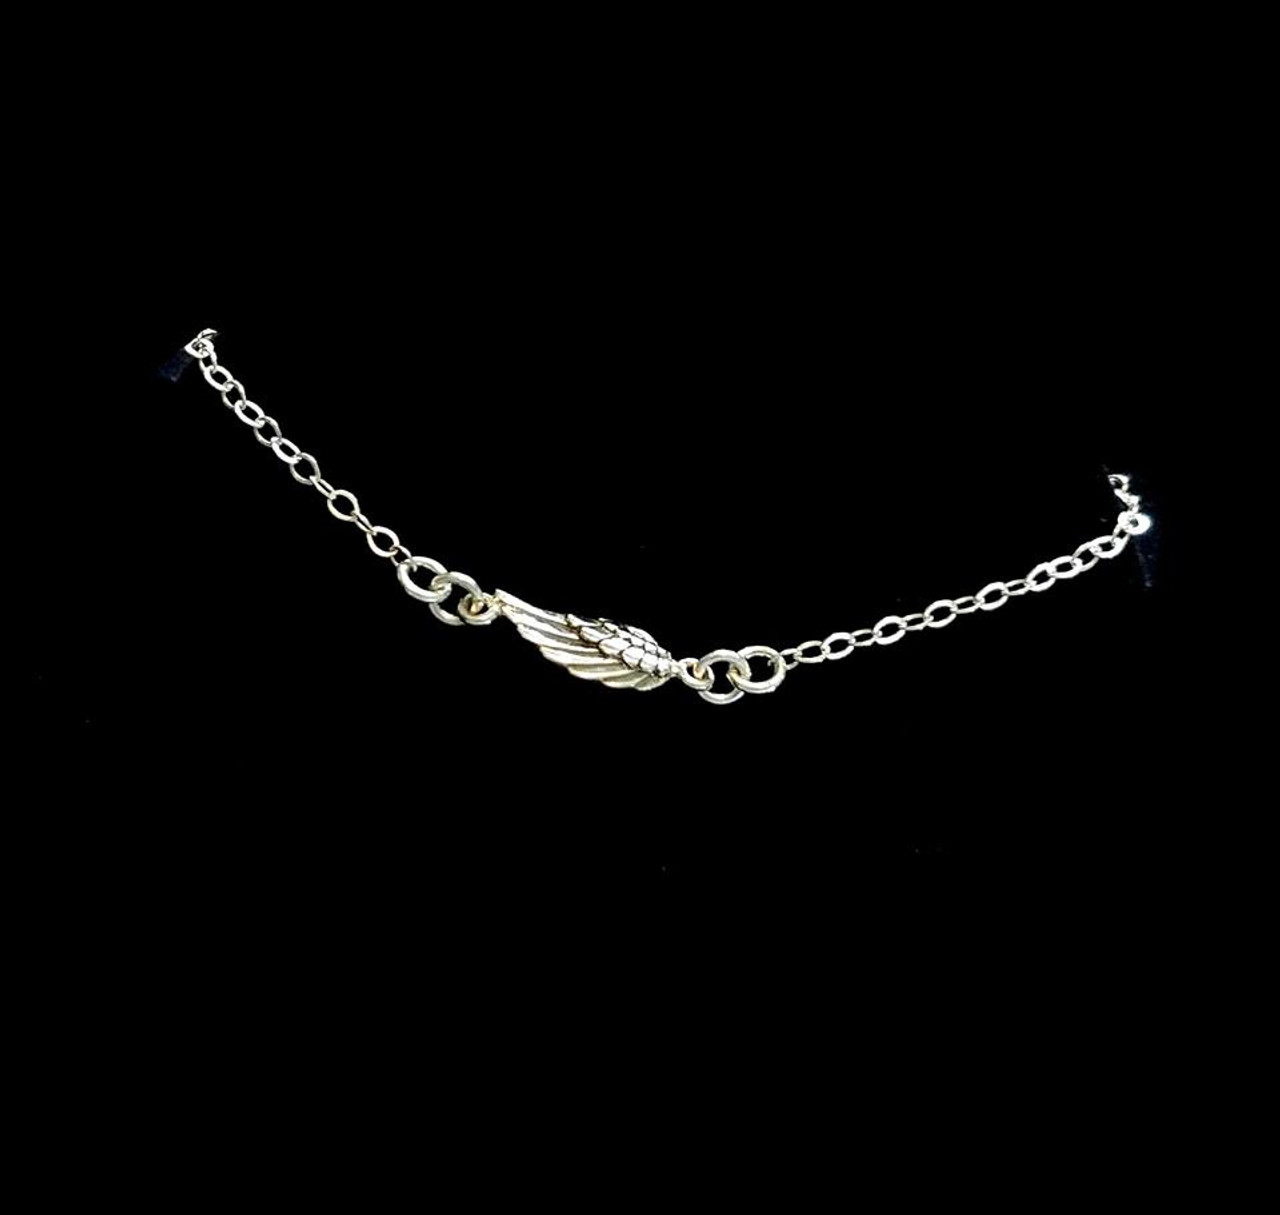 grams heart silver anklet sterling weight mm p polished width length